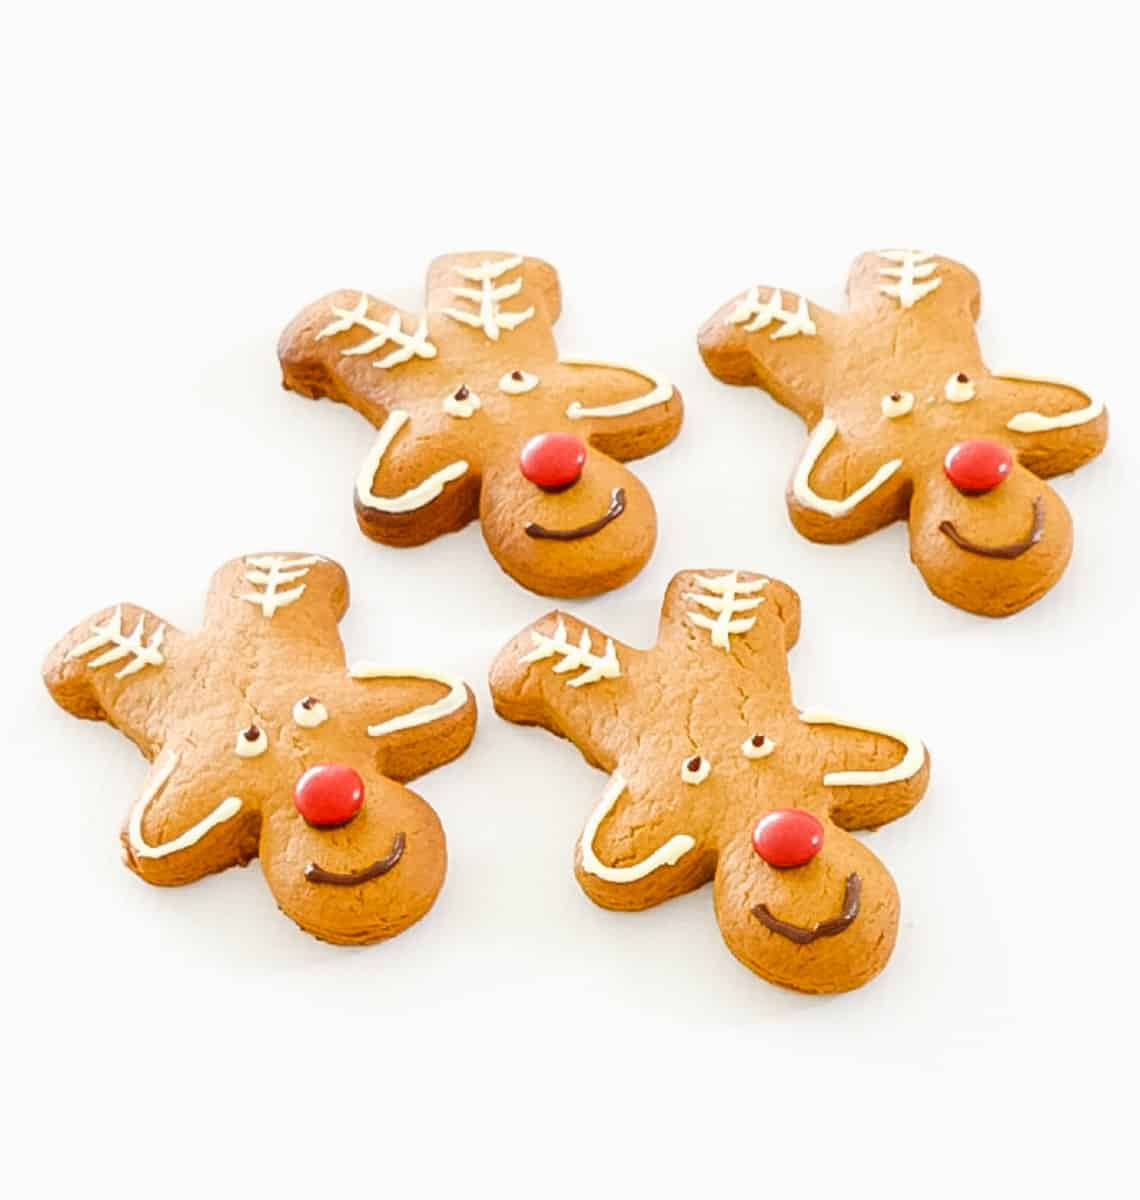 Biscuits shaped and decorated with icing and lollies to make reindeer faces